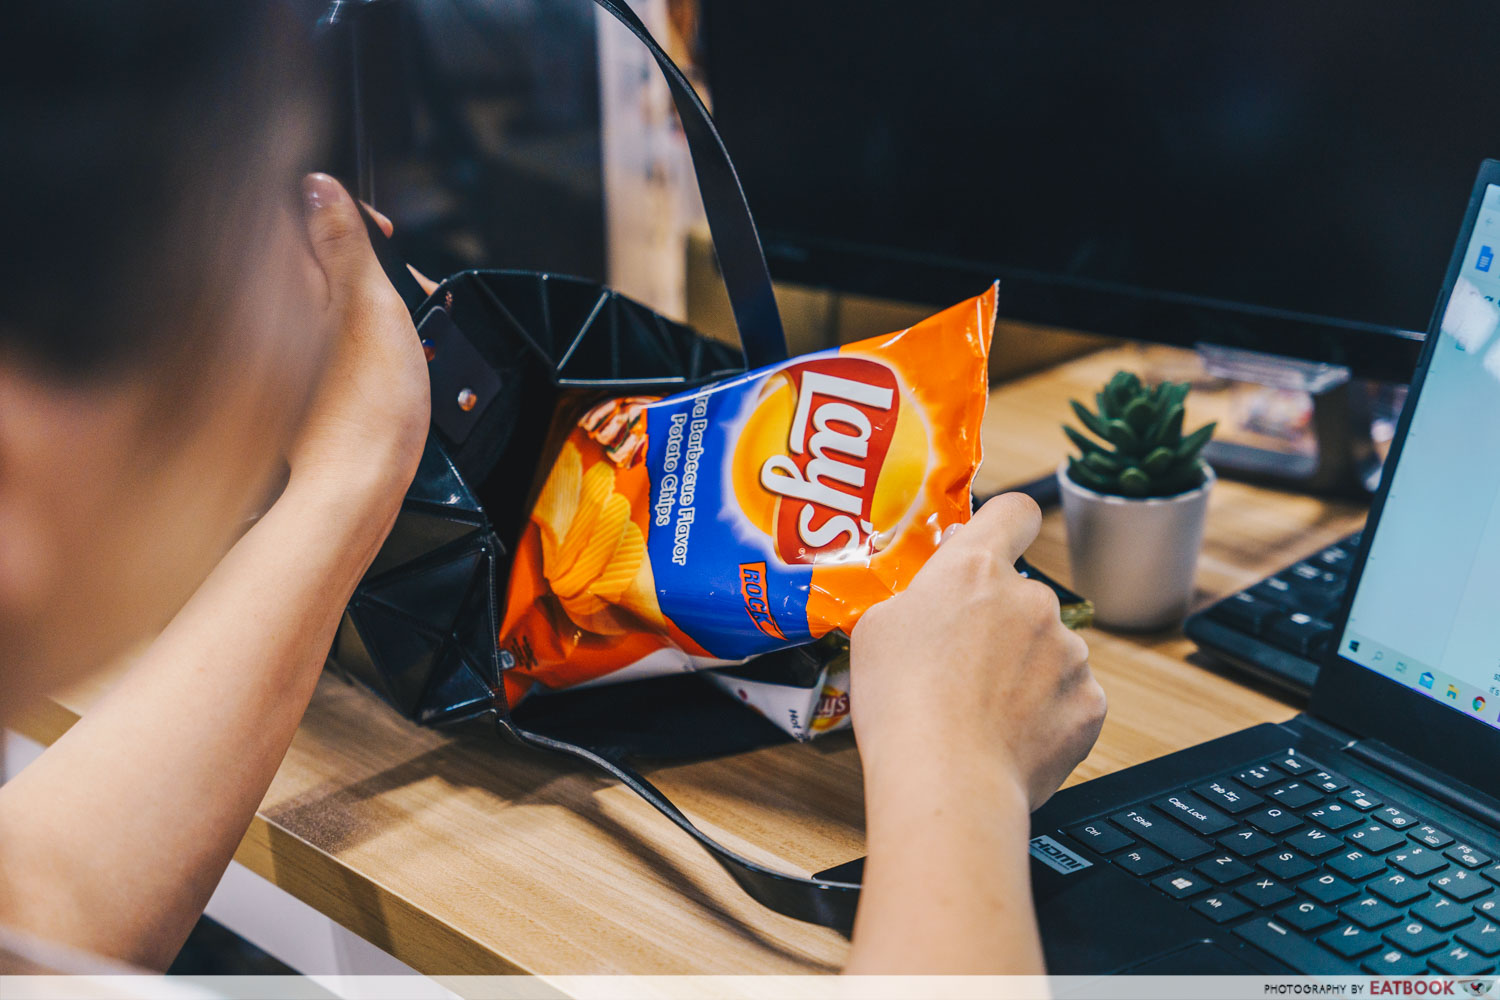 lay's potato chips - medium size